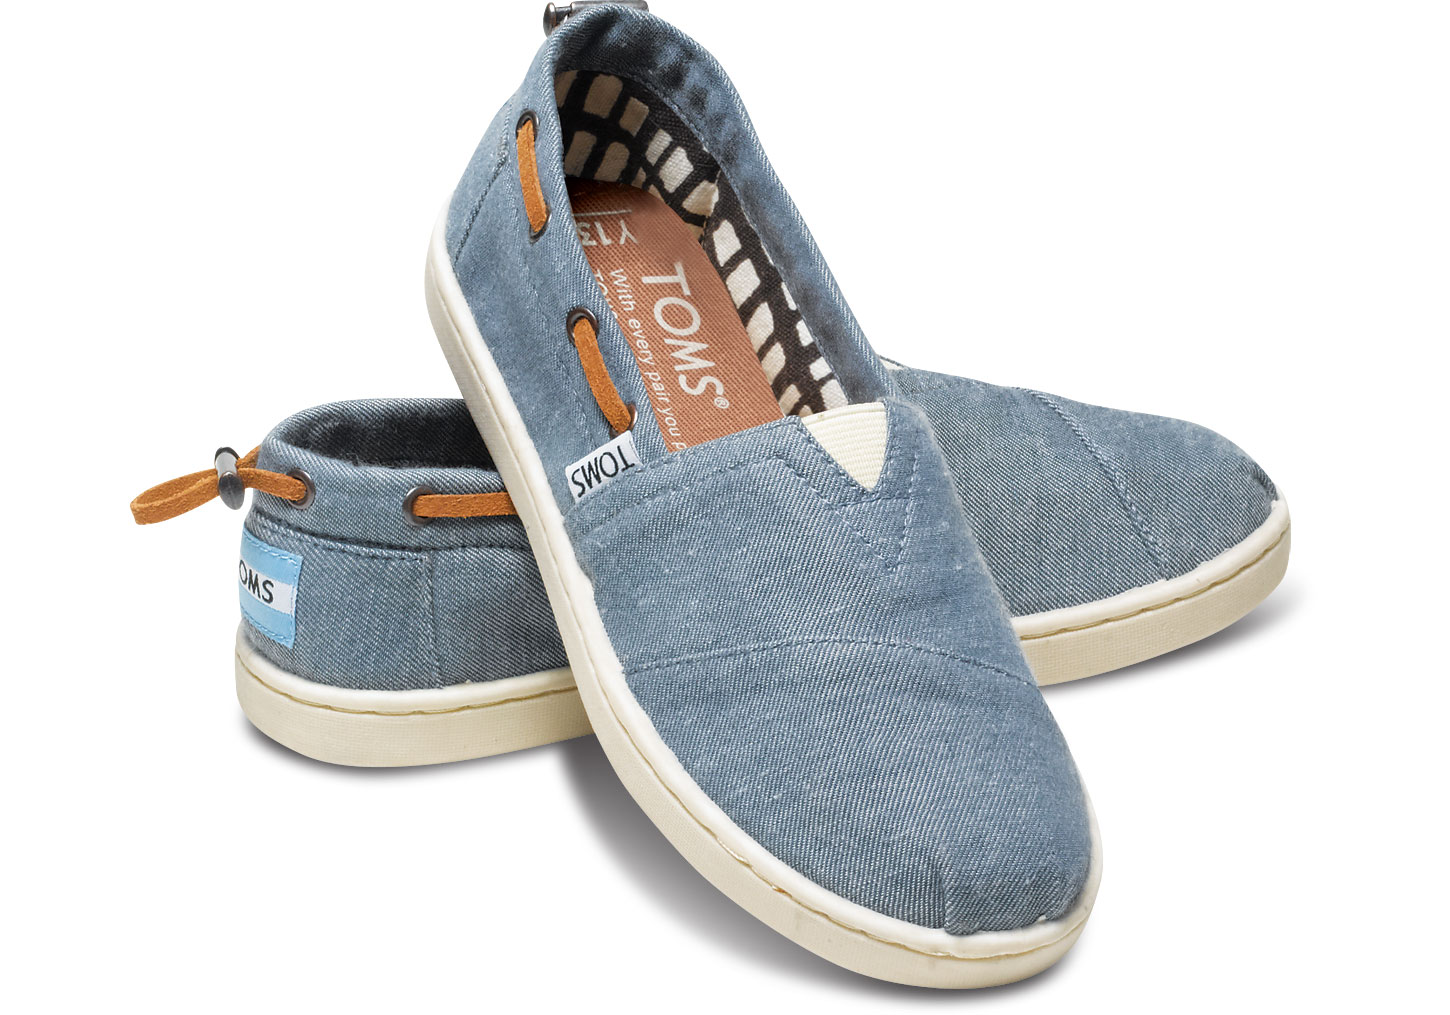 Chambray Youth Biminis - $42 Toms